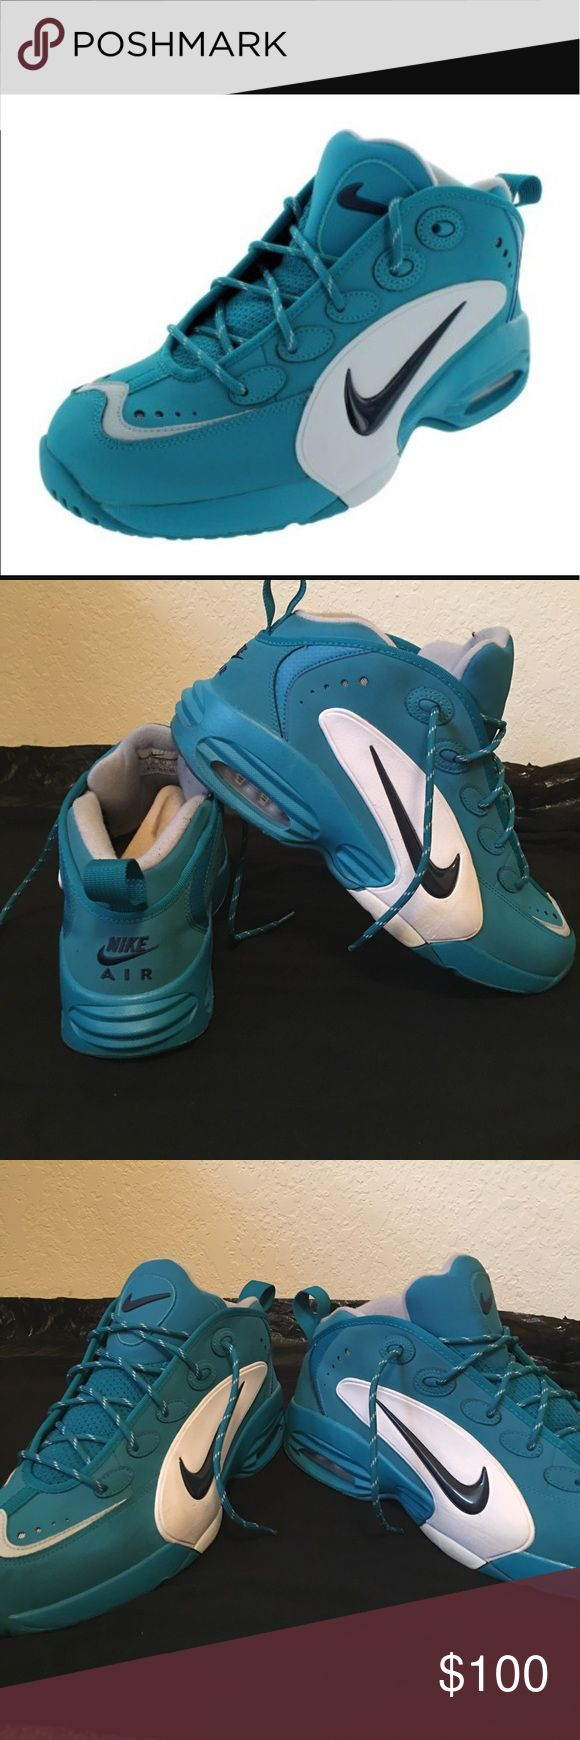 Nike Men's Air Way Up Retro Basketball Shoes. Used. No box. Good condition Nike Shoes Sneakers